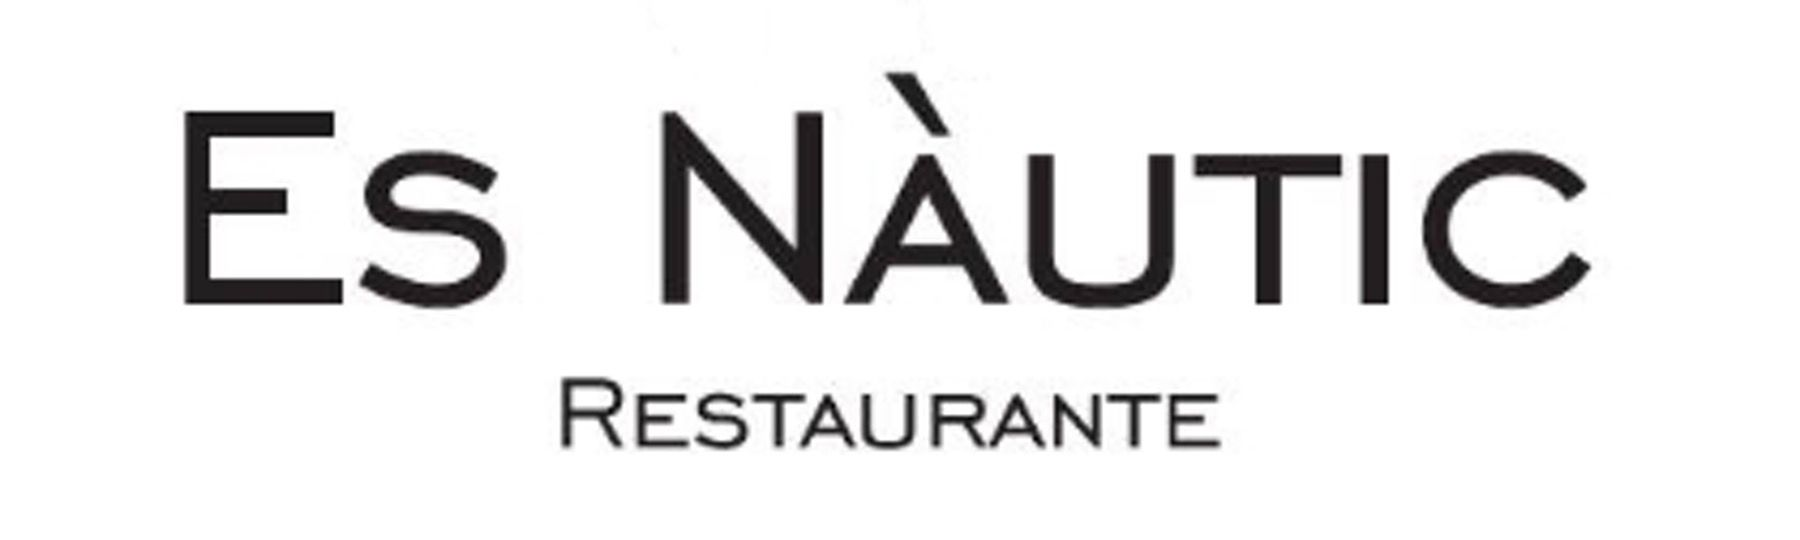 Es Nàutic Restaurant